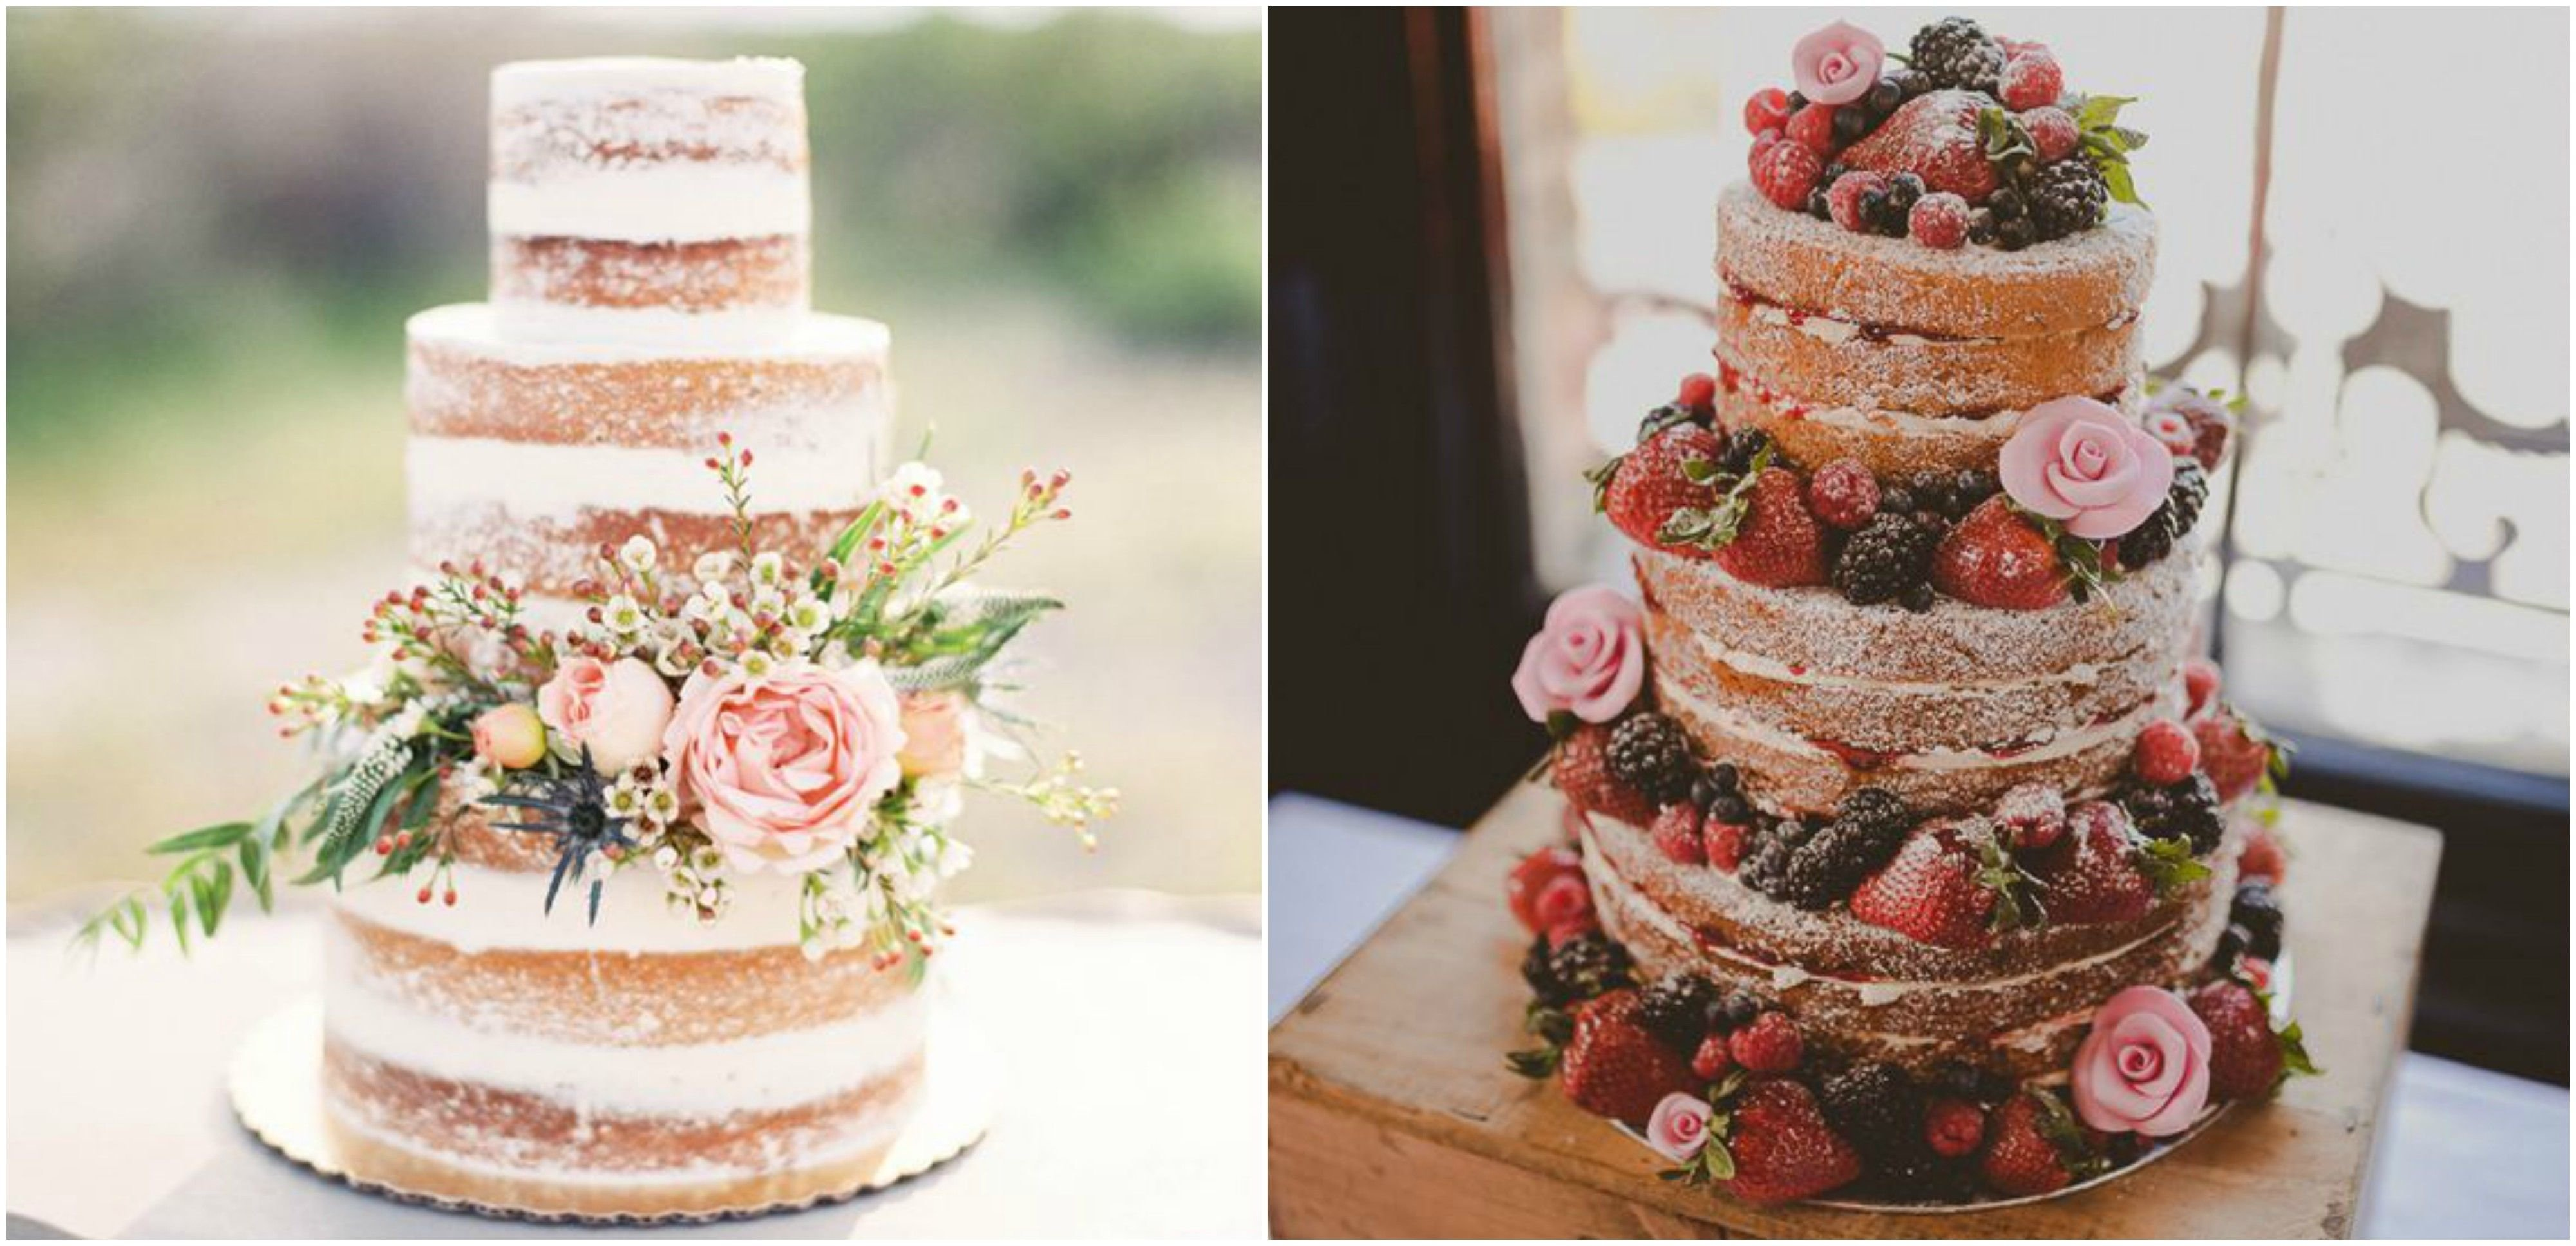 10 Awesome Wedding Cake Ideas For Summer naked cake naked cakes pinterest summer wedding cakes wedding 2020